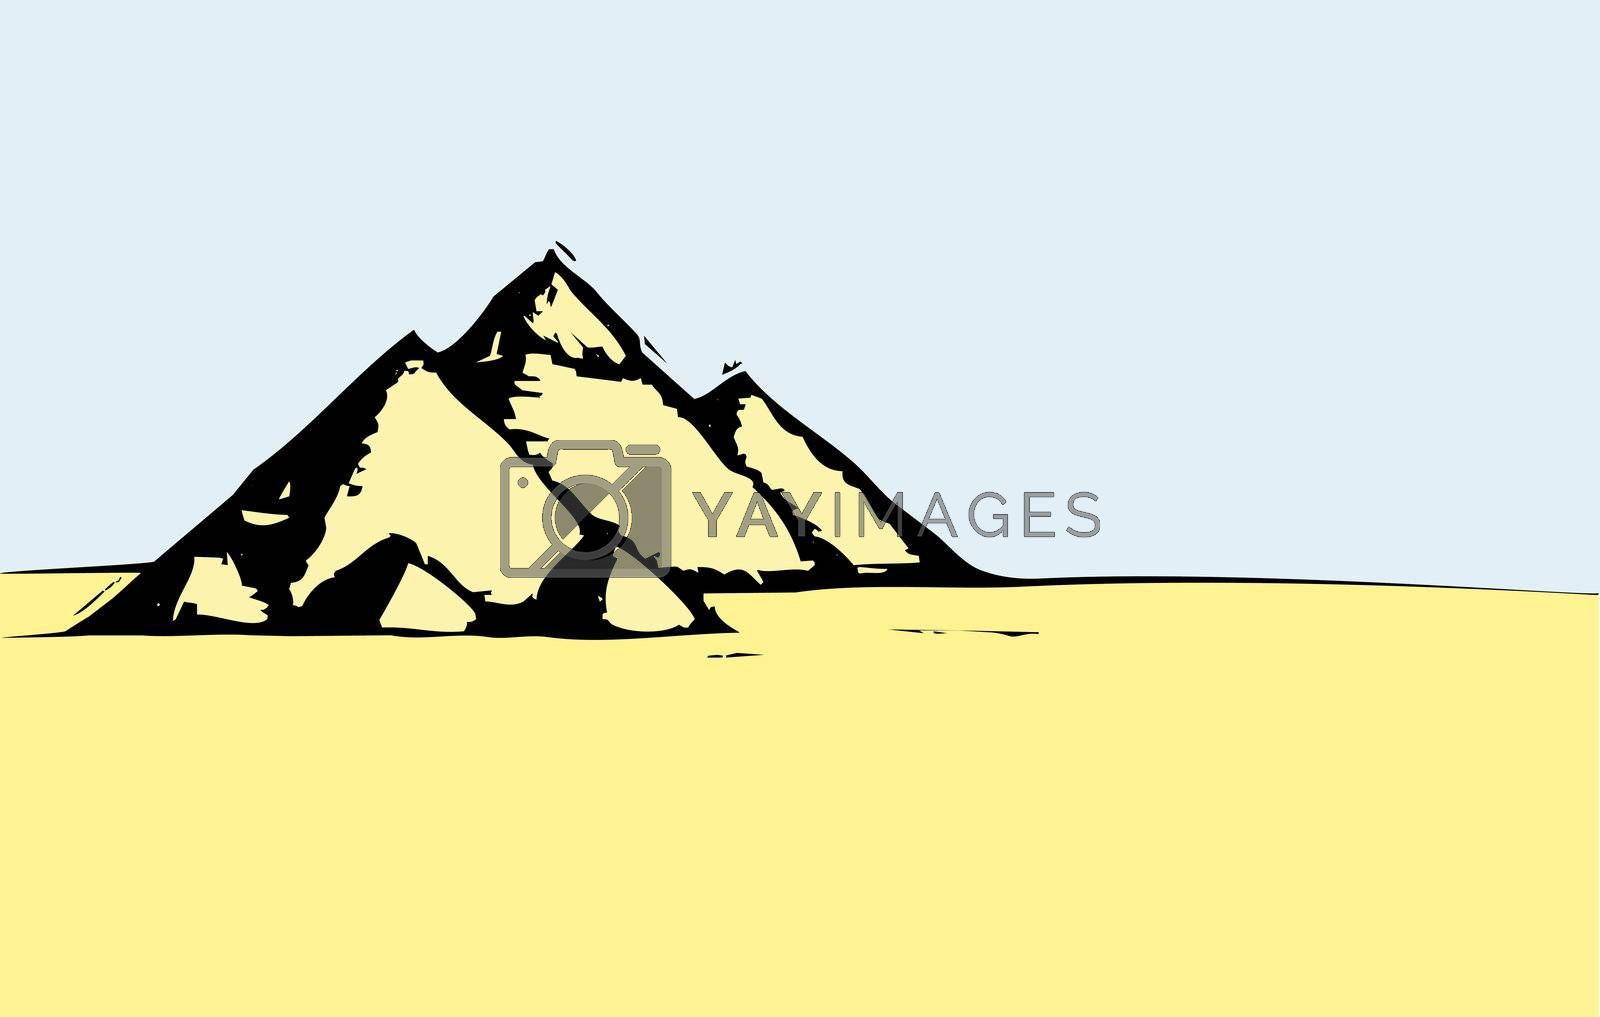 Woodcut style image of the Egyptian pyramids.